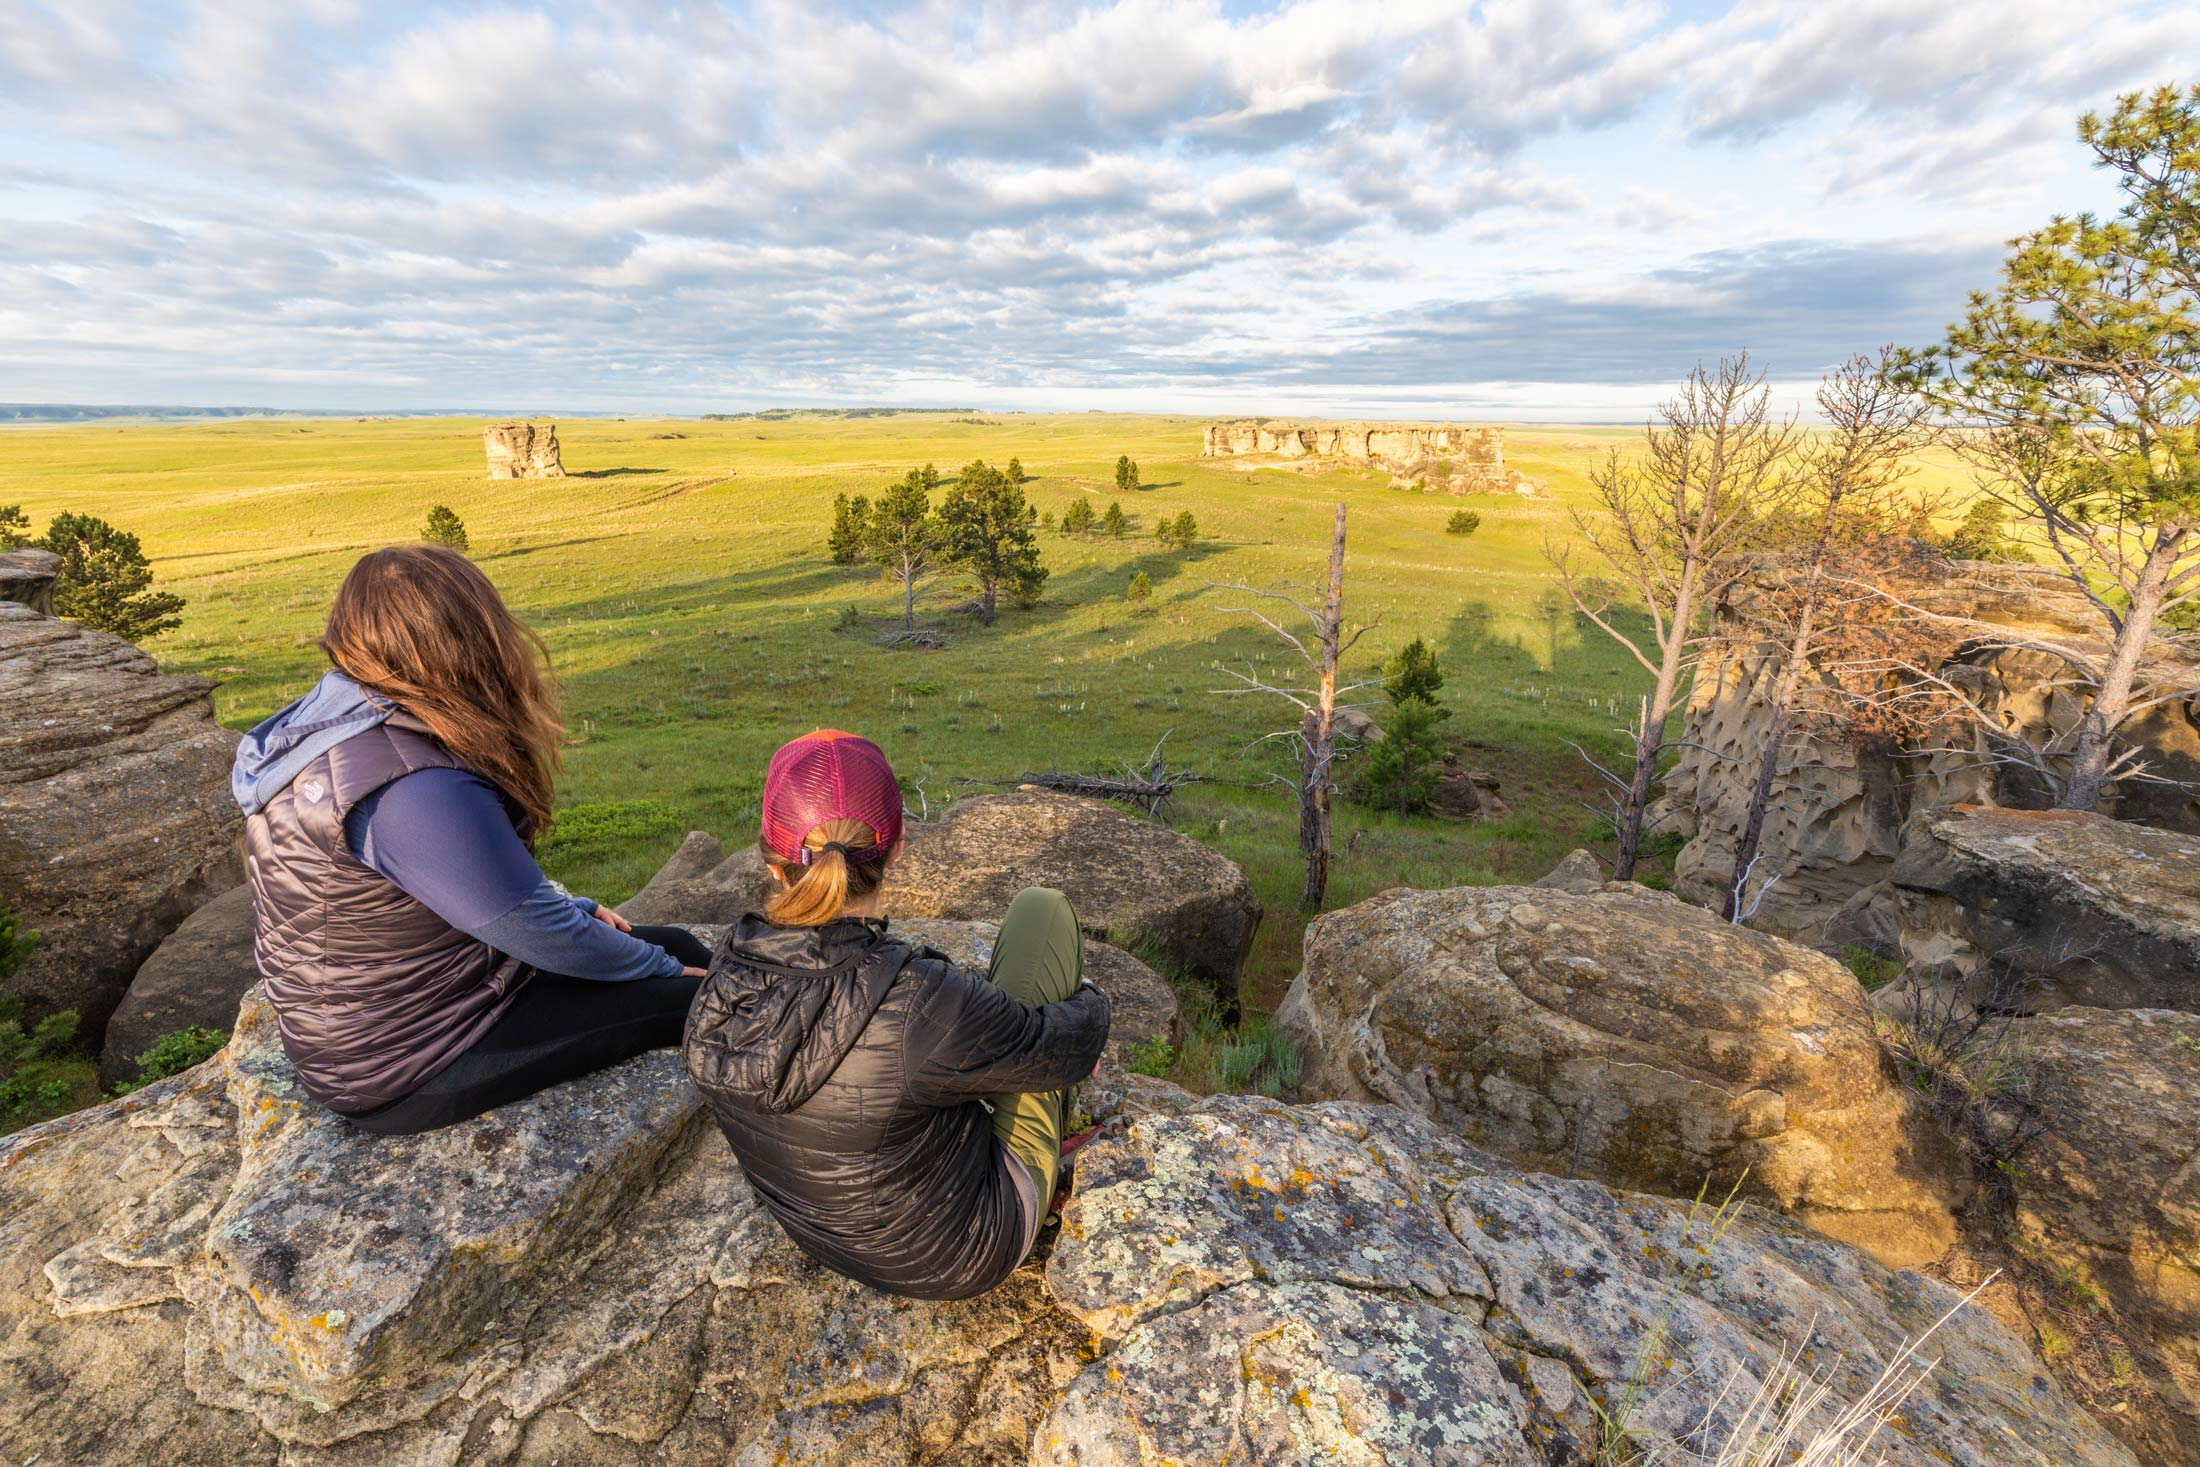 Southeast Montana's Big, Open Spaces are the Perfect Place for an Escape: Part I